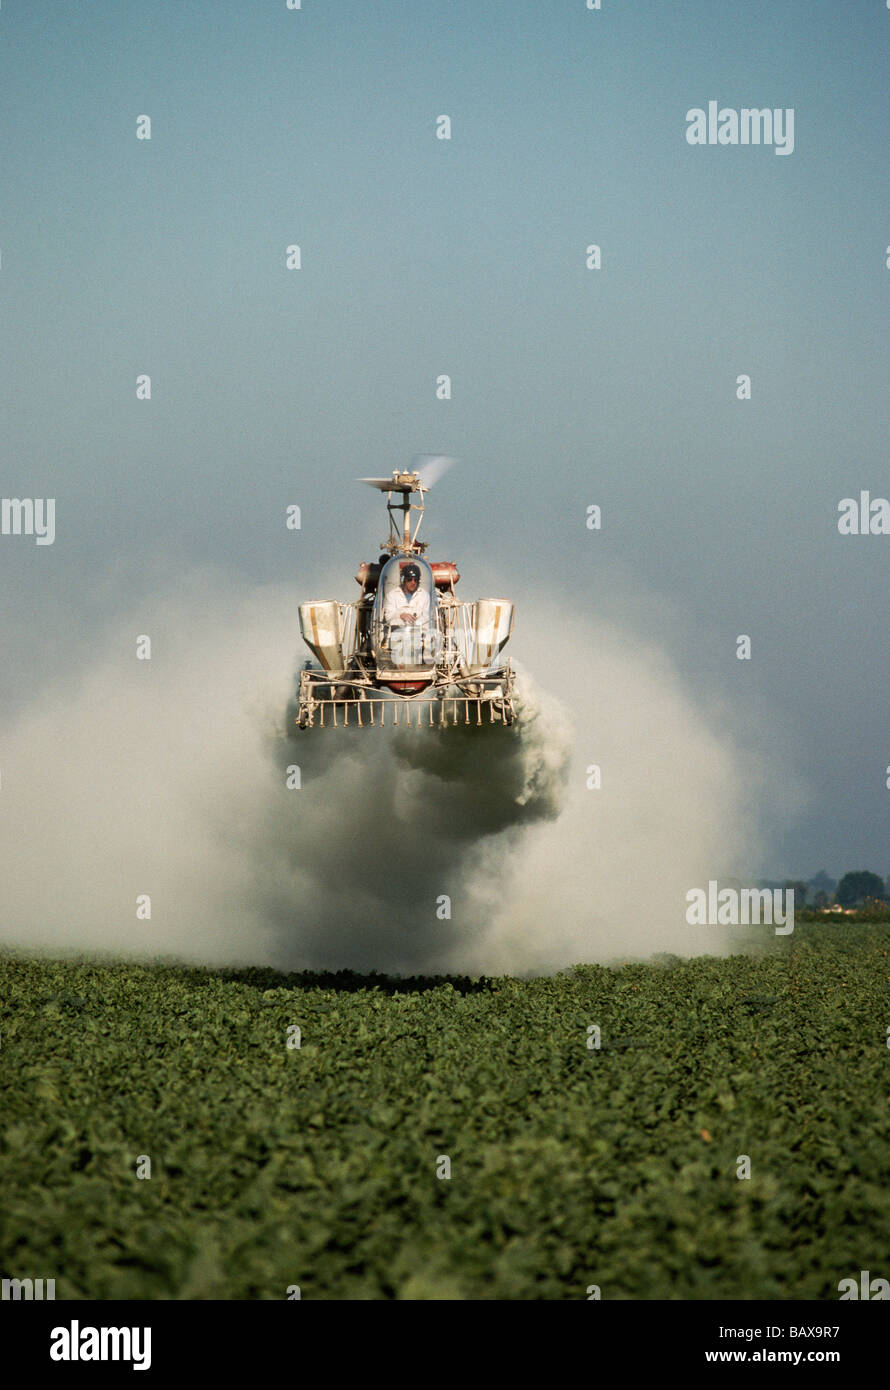 Helicopter modified G3B Bell dusting Sugar Beet field. - Stock Image